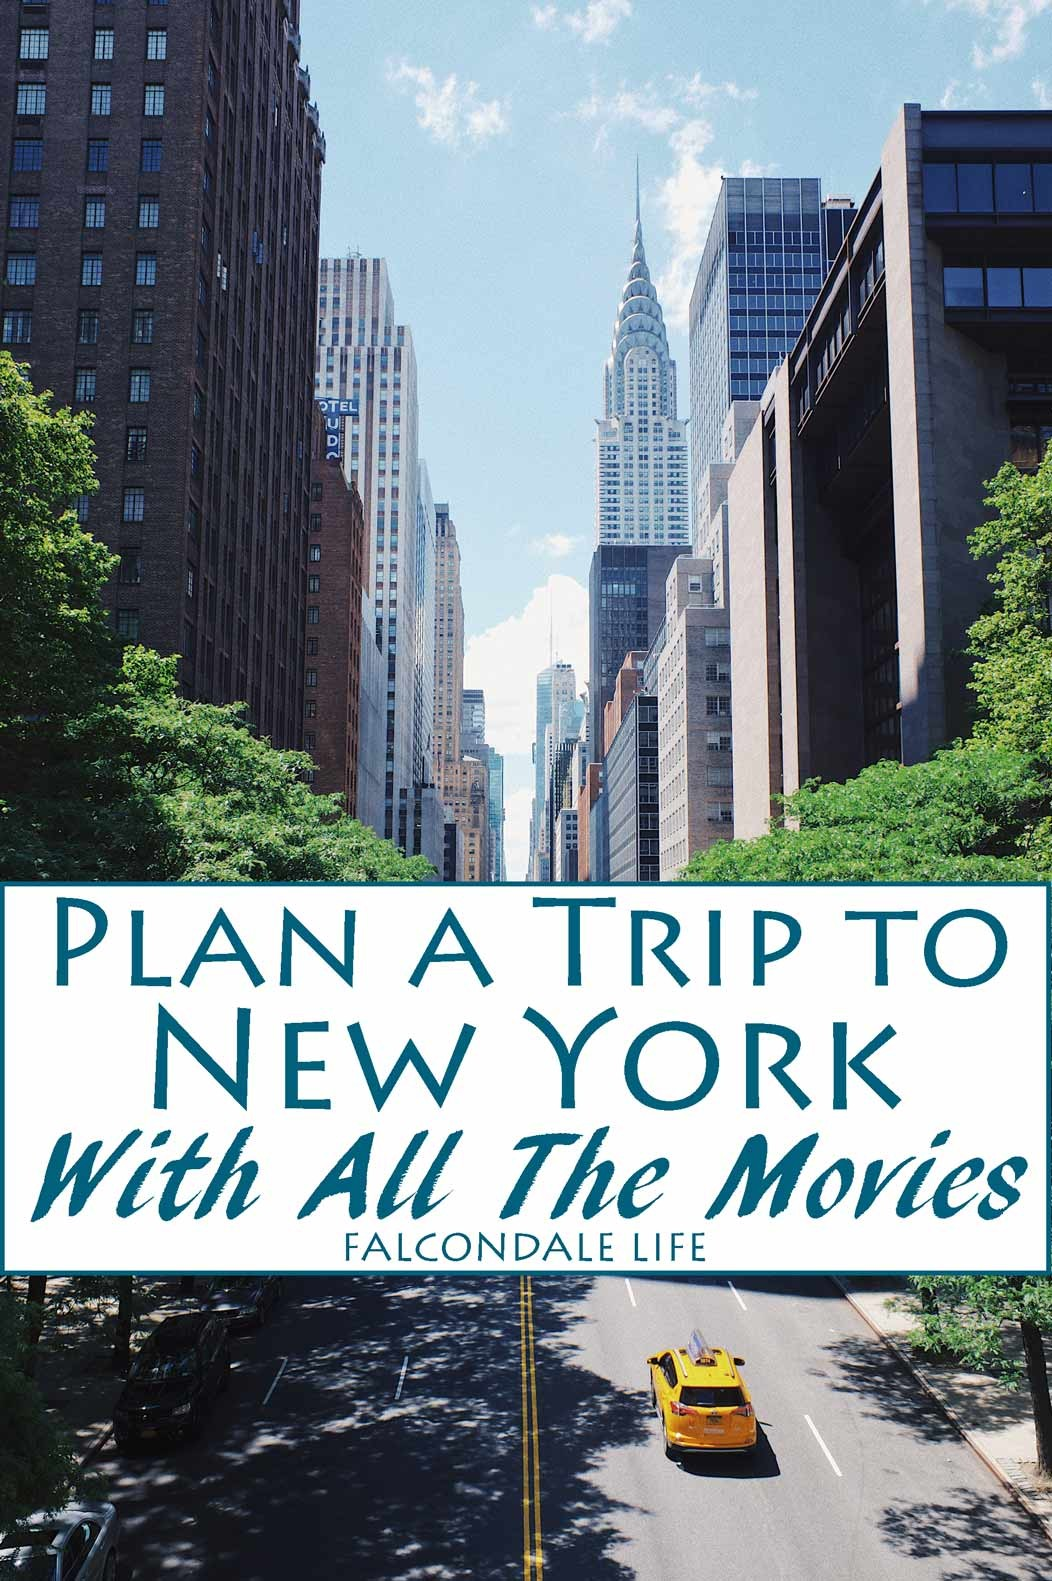 Plan a Trip to New York with All The Movies